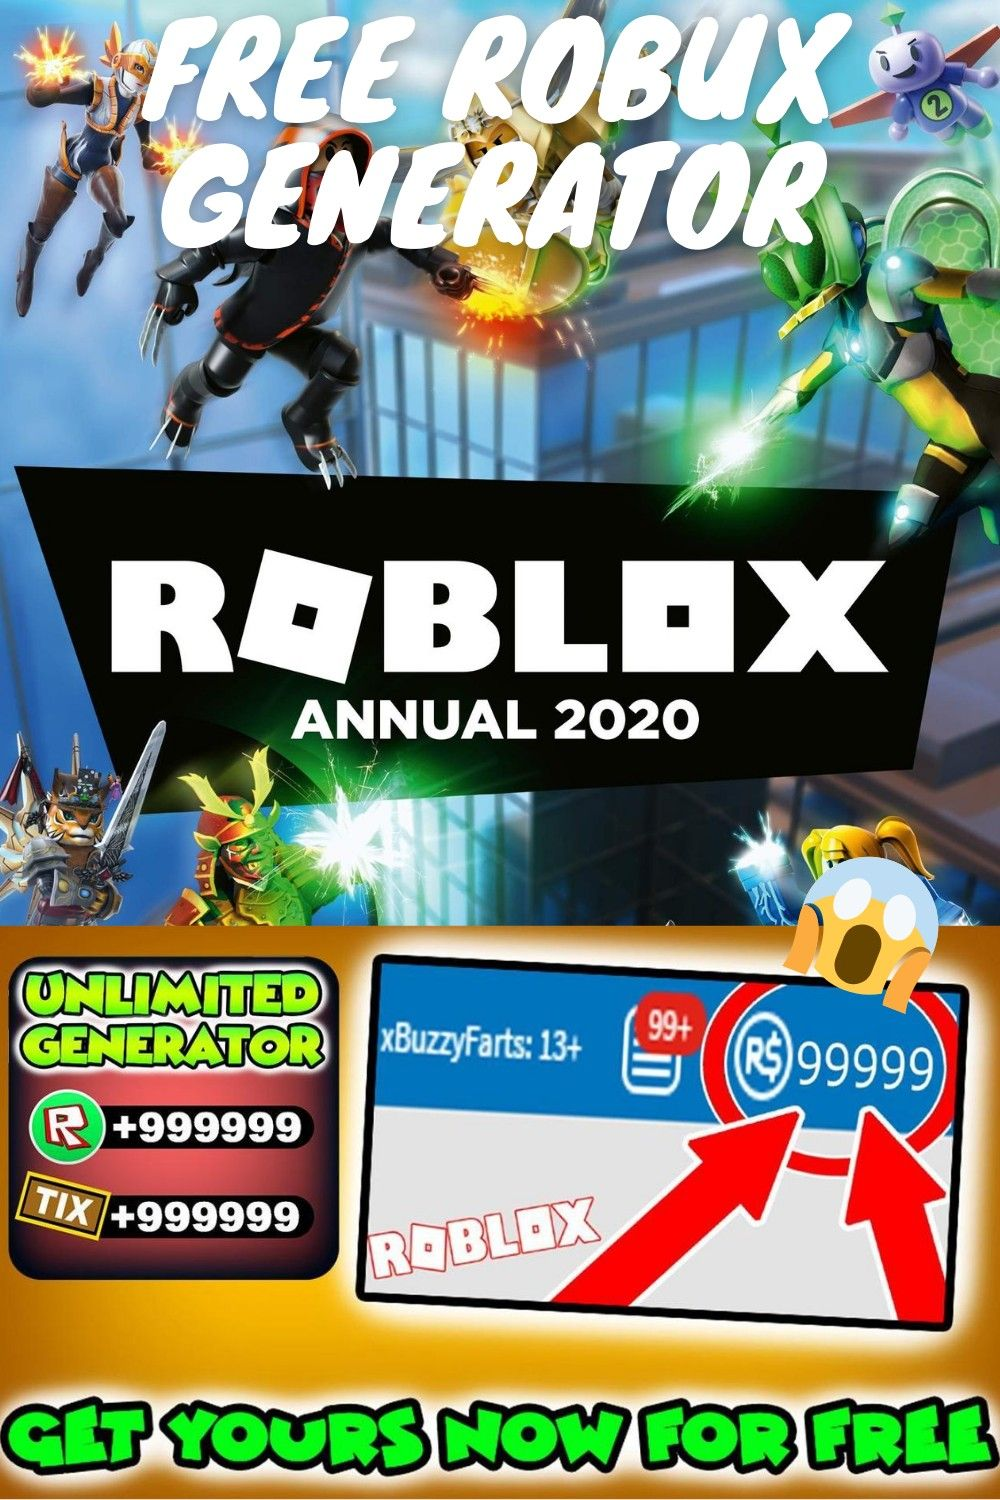 earn robux free 2020 How To Earn Robux For Free 2020 In 2020 Free Roblox Promo Codes